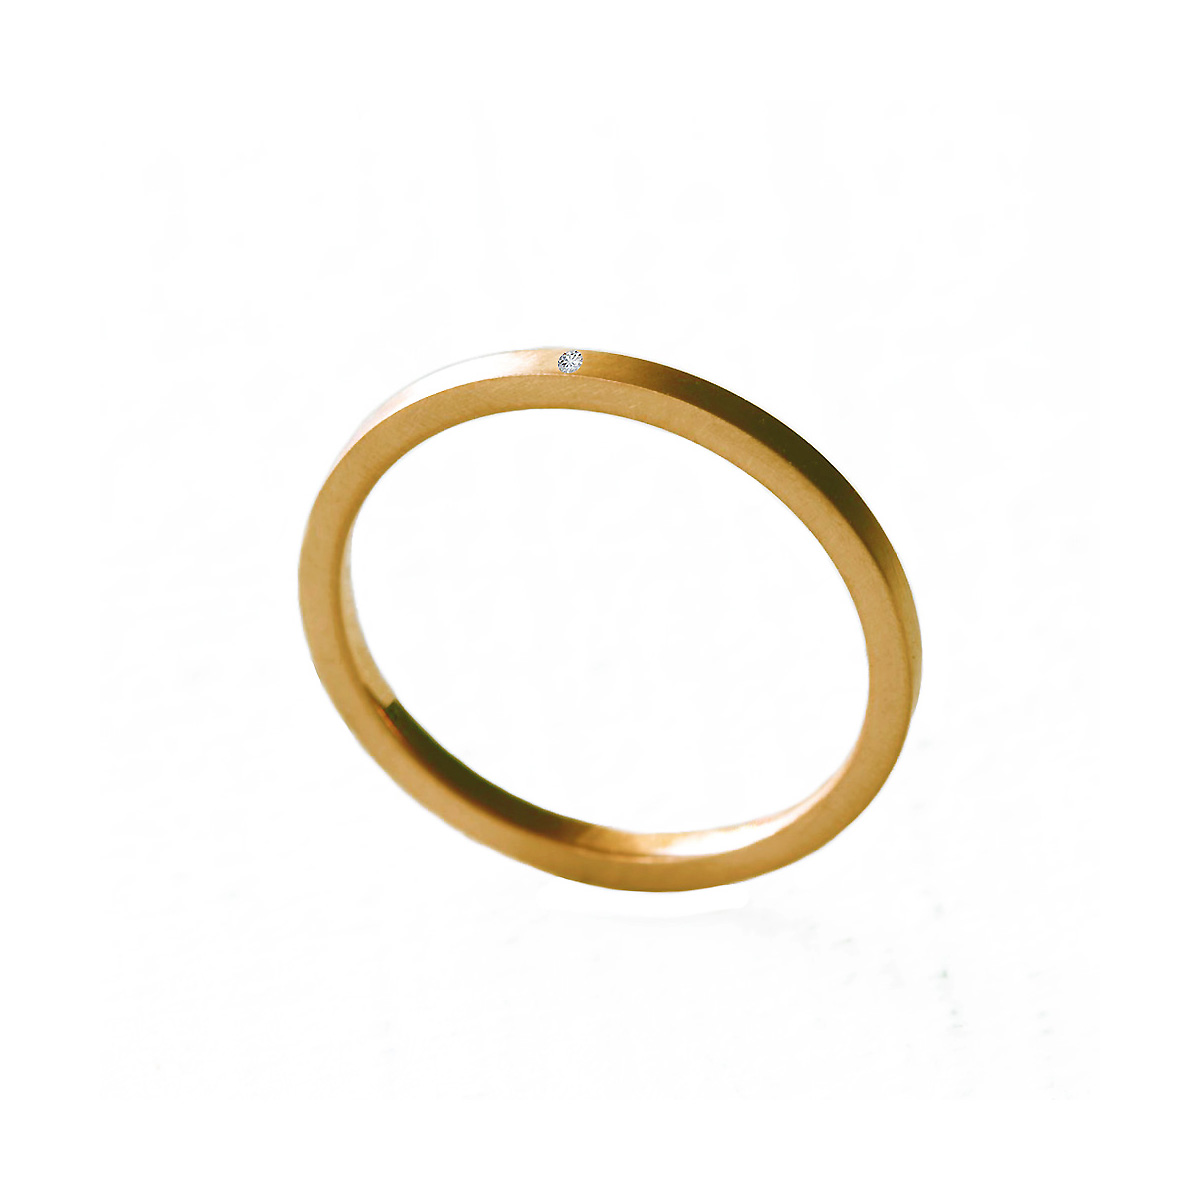 The stackable ring in 14k yellow gold